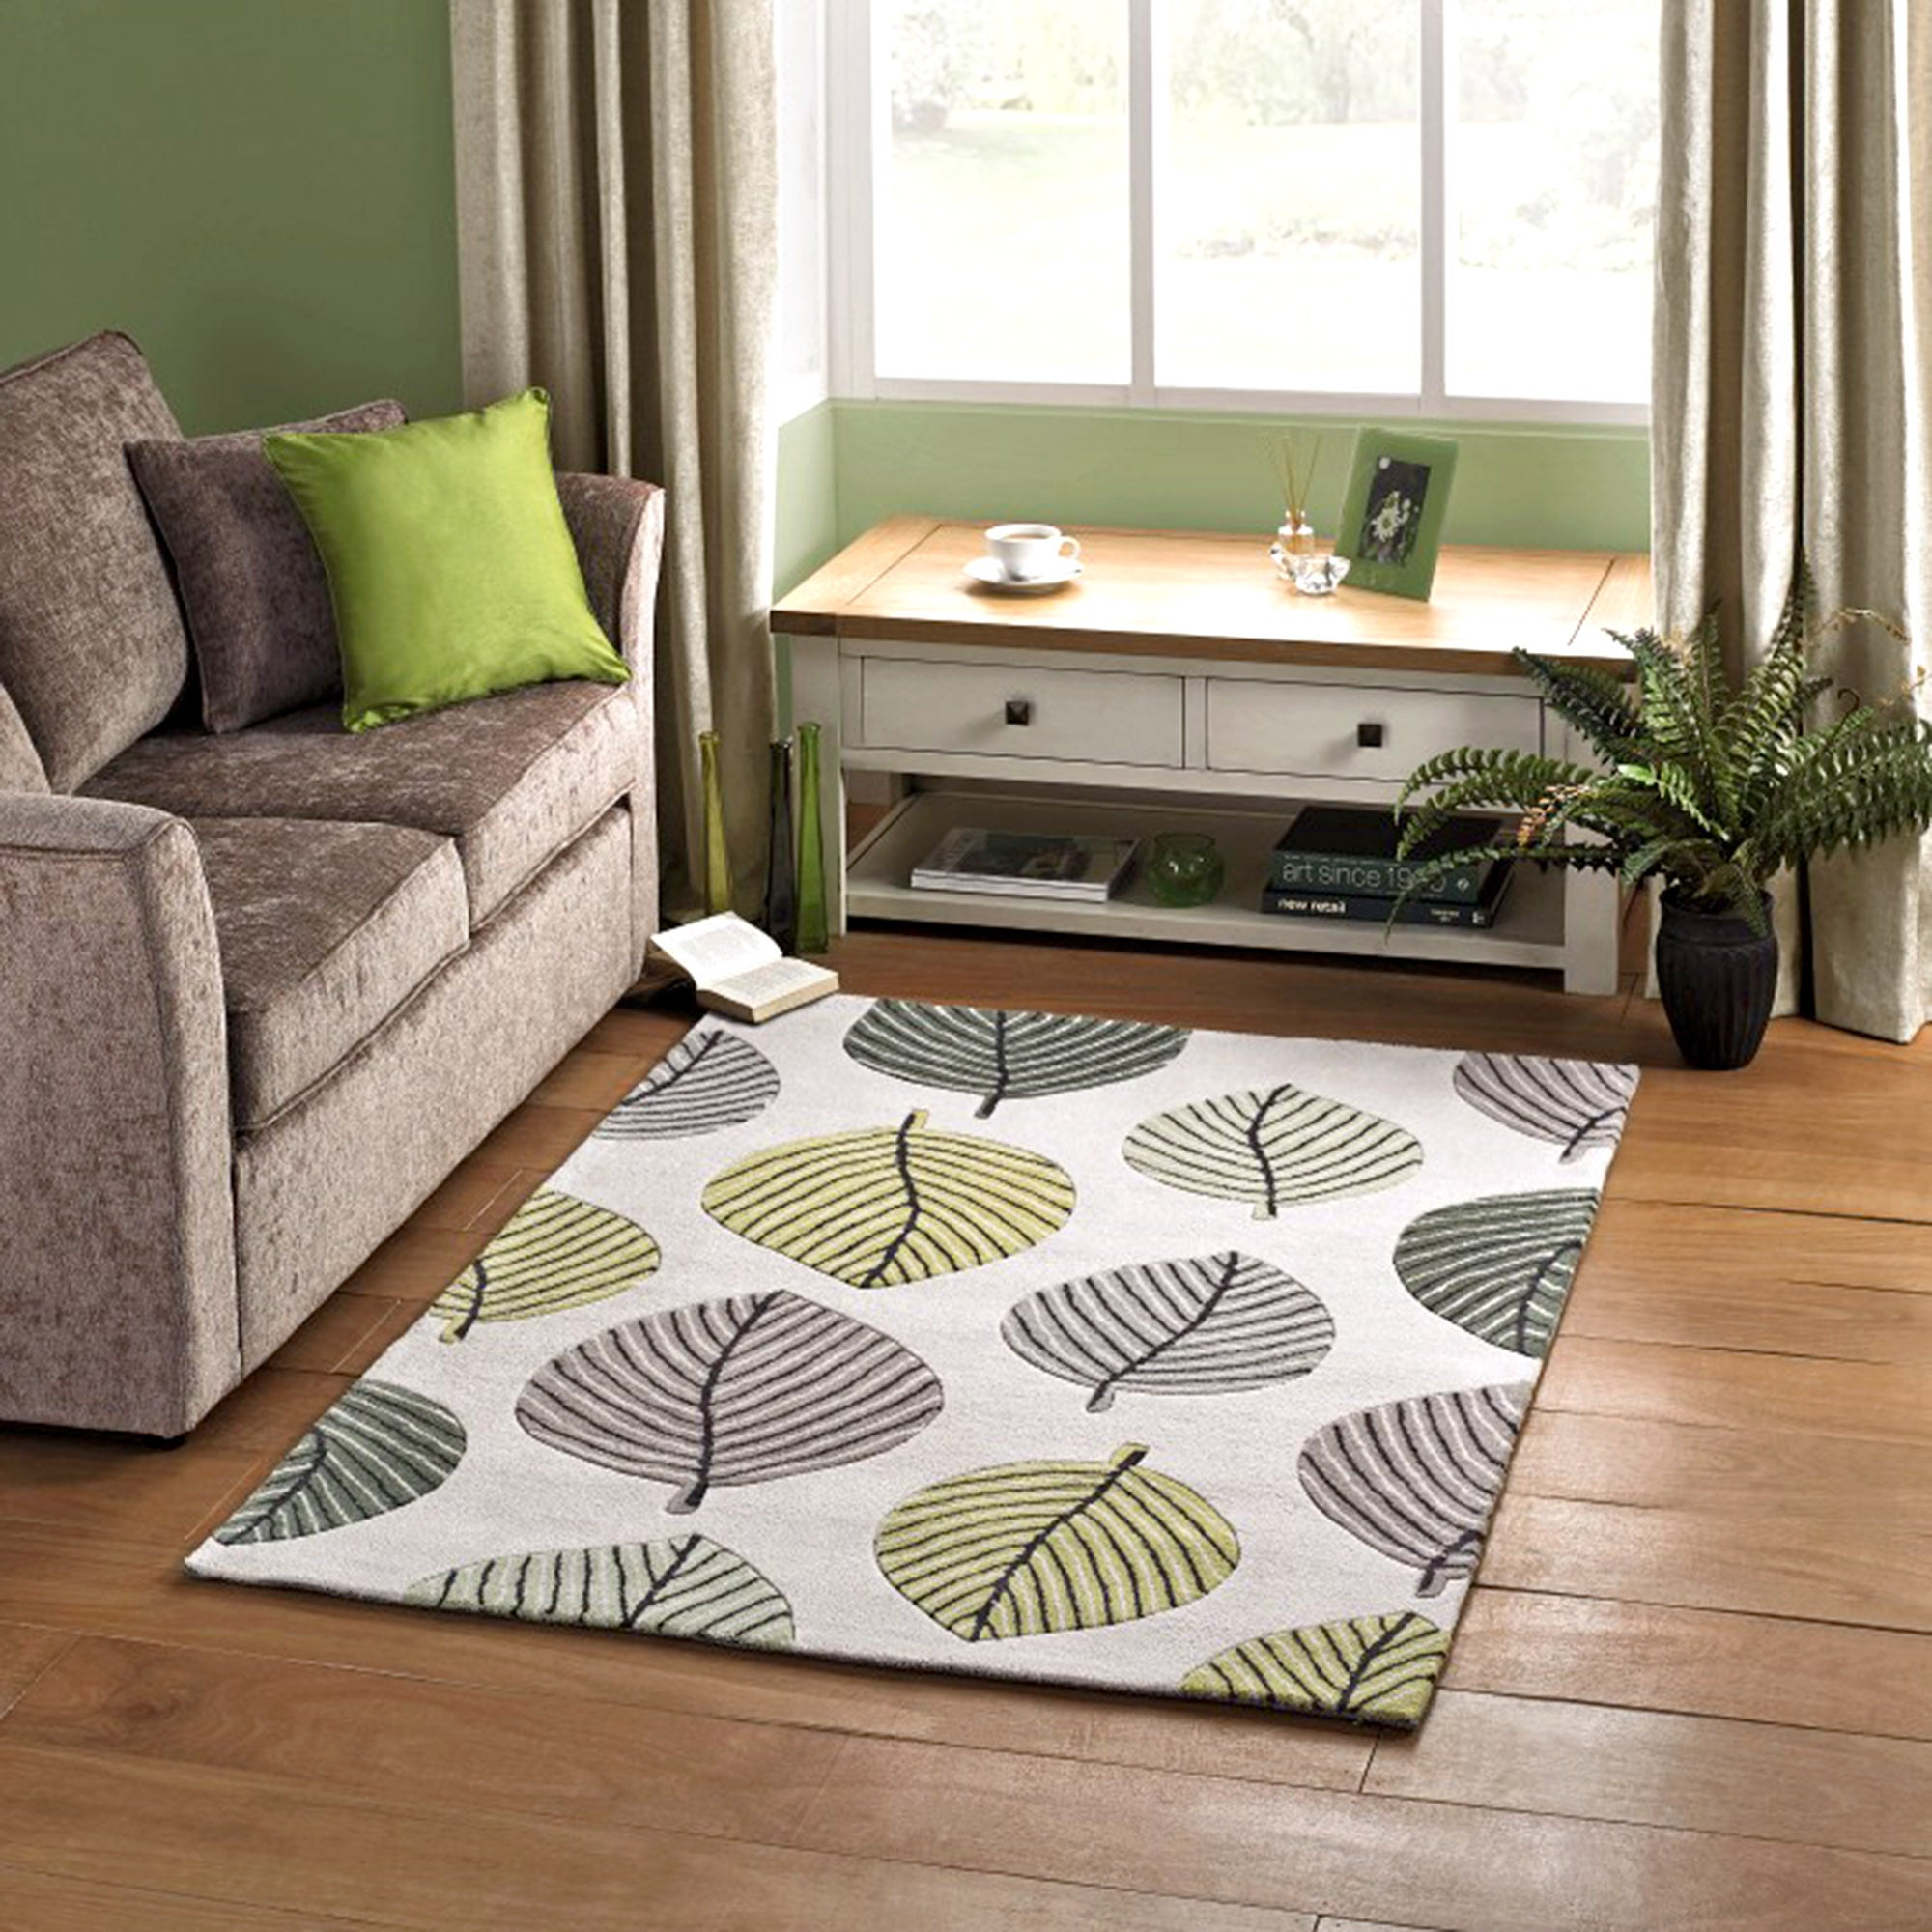 Regan Leaf Rug  Dunelm. Creating A Focal Point In A Living Room. Adult Live Chat Rooms. 20 Minute Living Room Workout. End Tables Living Room. Living Room Chair Covers. Living Room Wall Decoration Ideas. Neutral Colored Living Rooms. Image Of Living Room Design